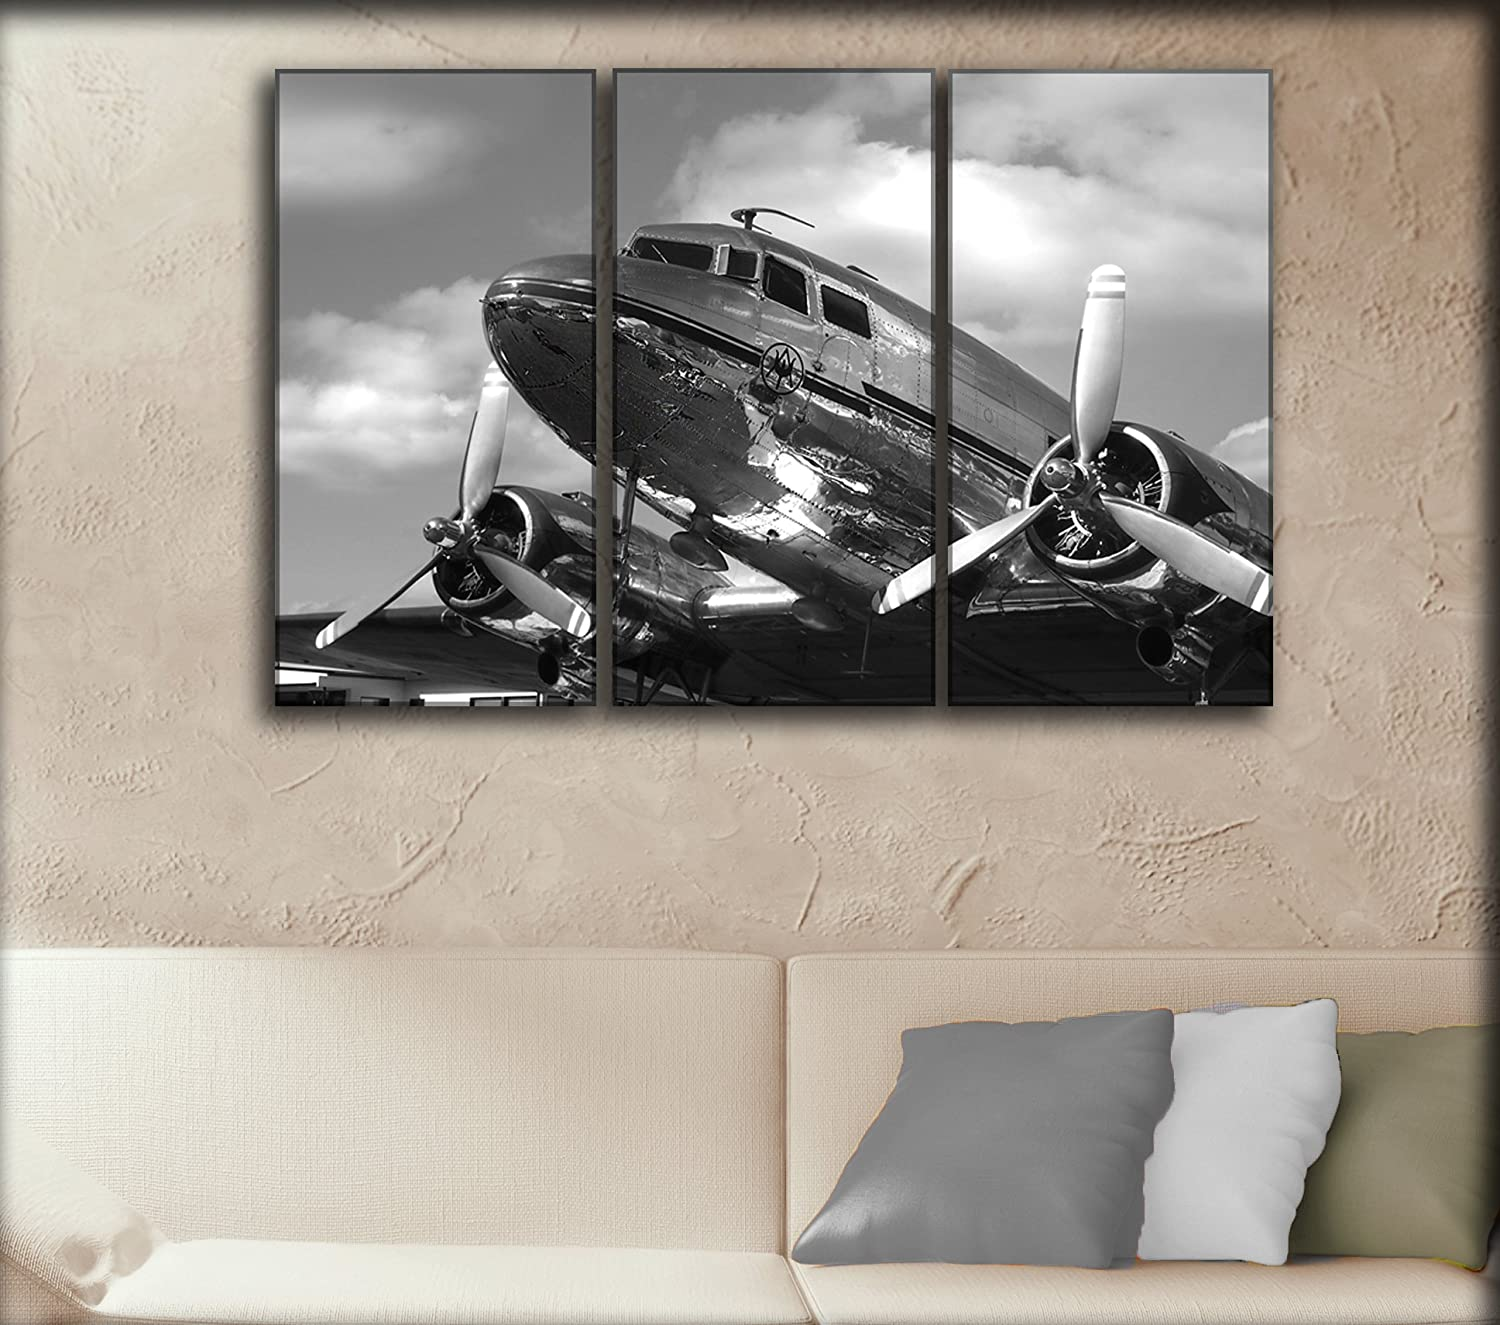 Amazon 3 panel dc 3 dakota airplane canvas art aircraft amazon 3 panel dc 3 dakota airplane canvas art aircraft canvas wall art vintage plane picture propeller wall canvas art wall home decoration amipublicfo Choice Image